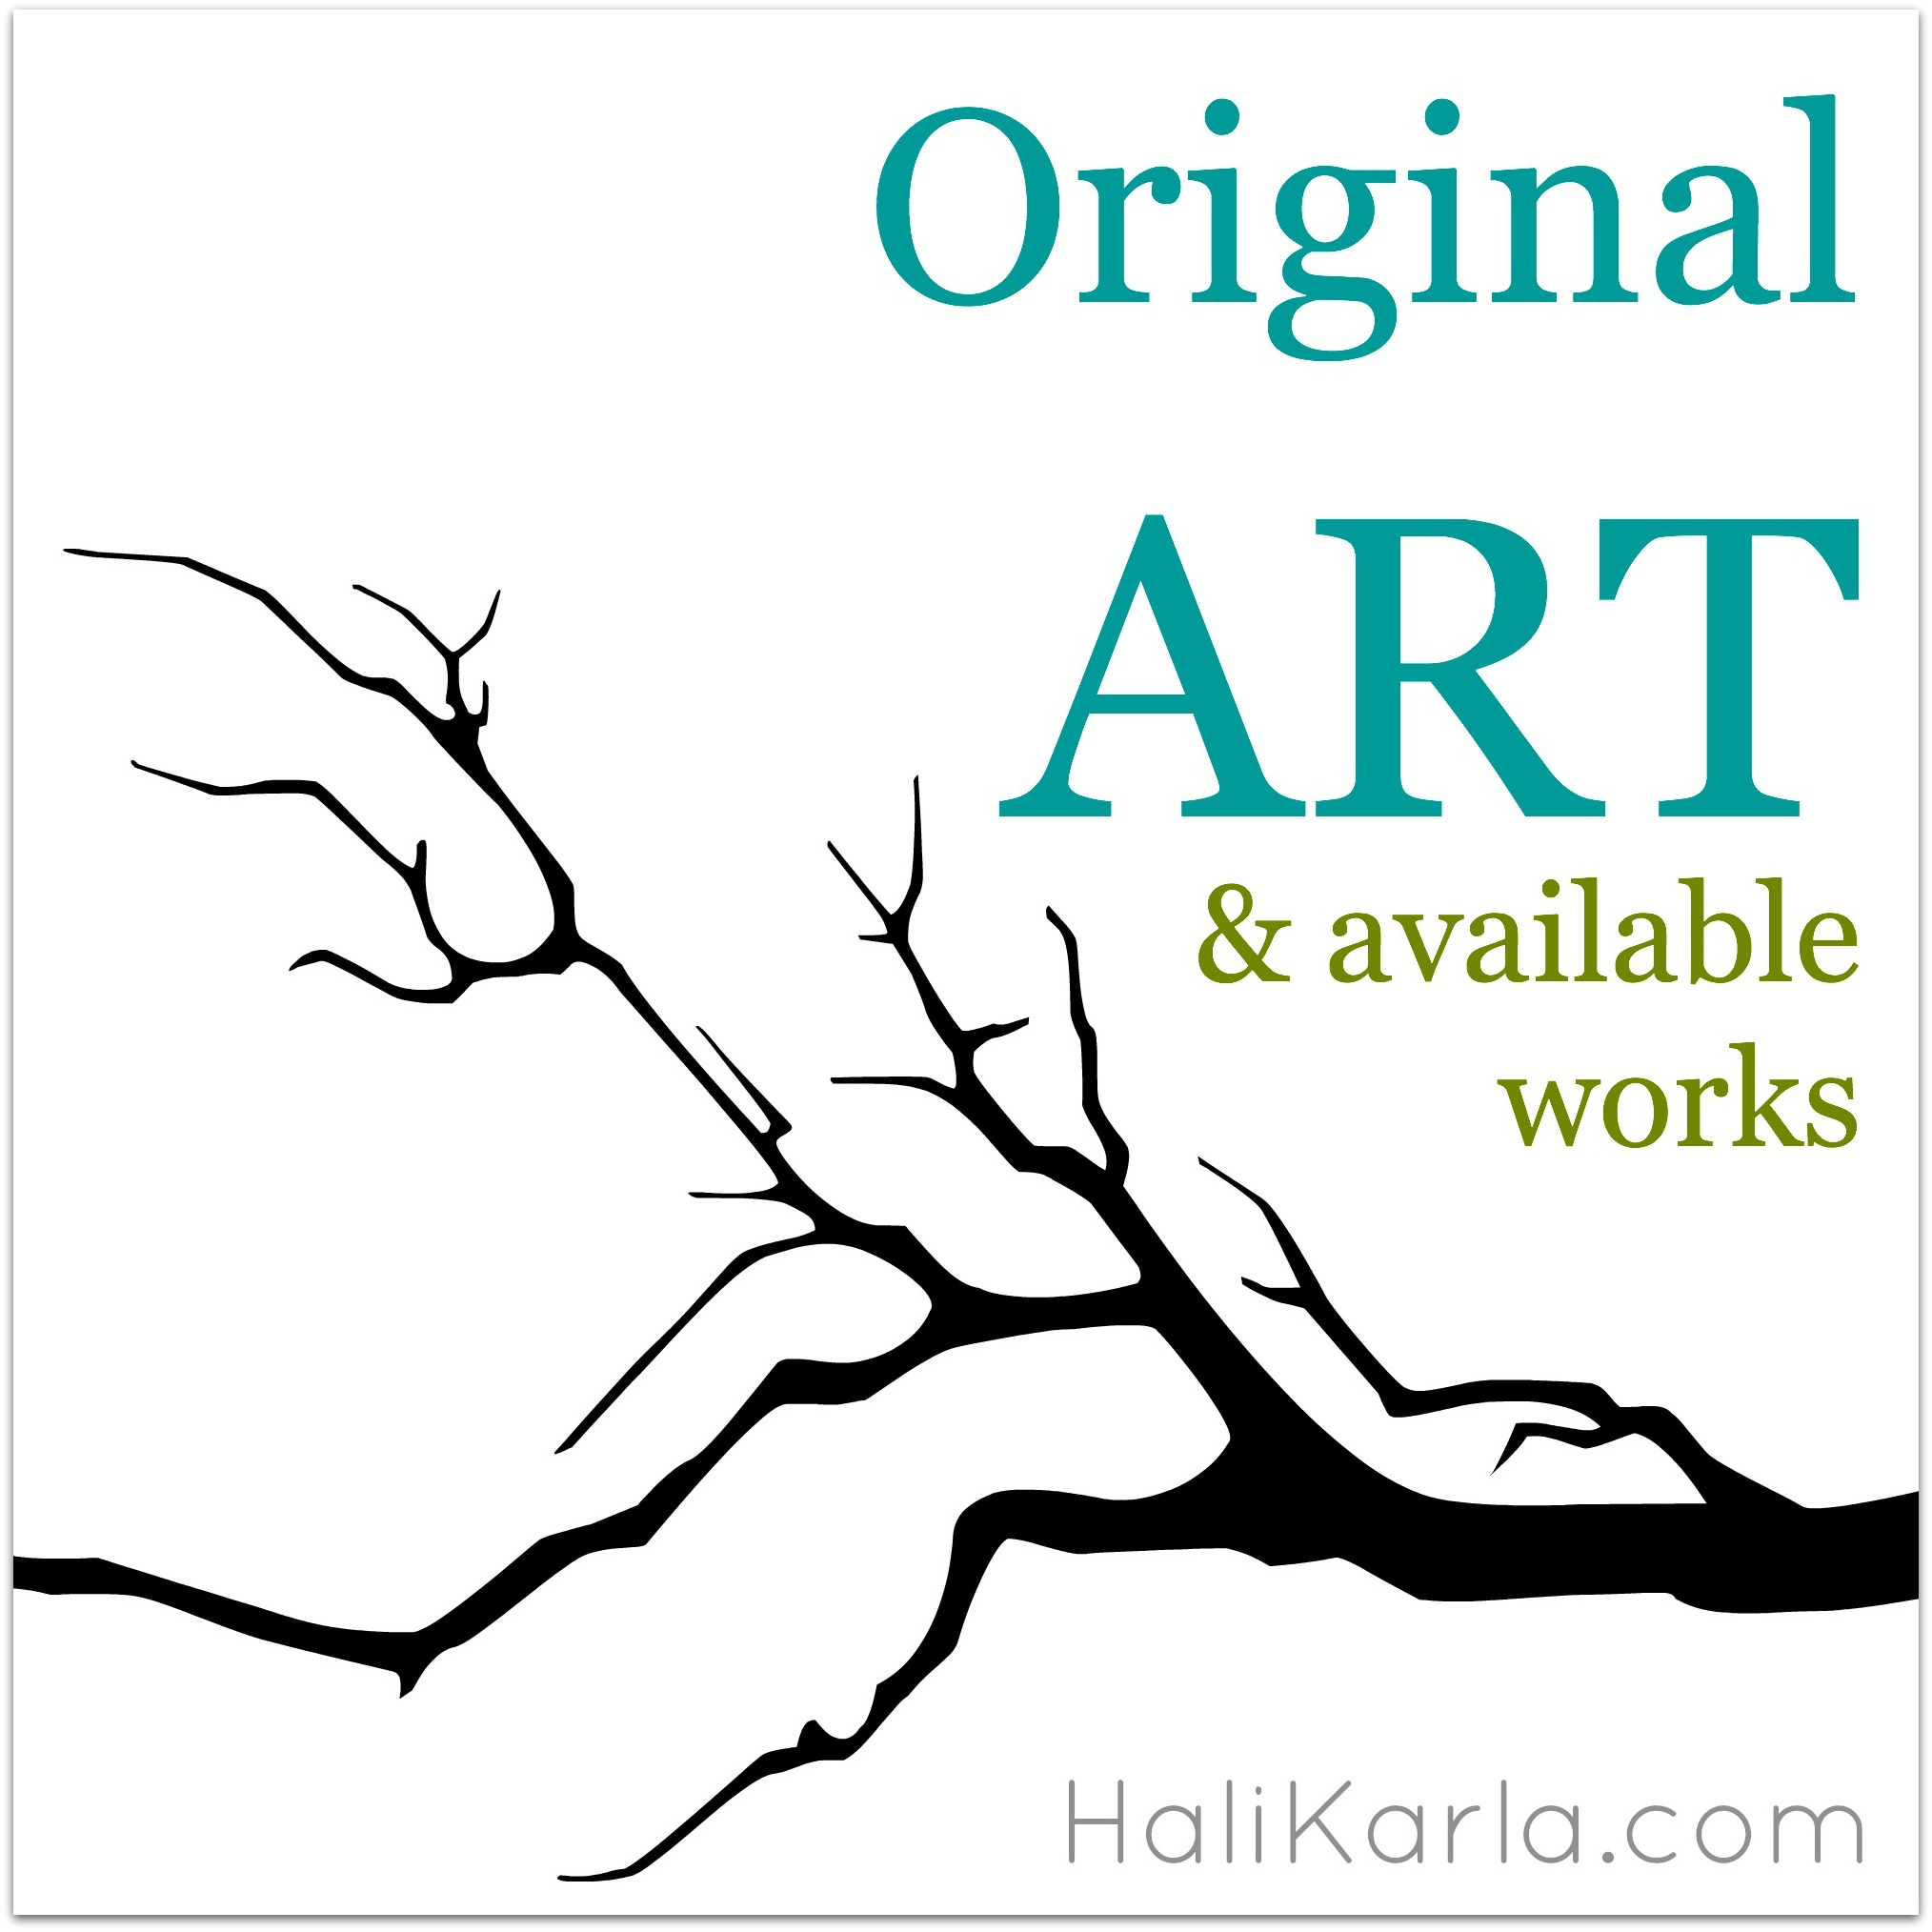 originalartbutton